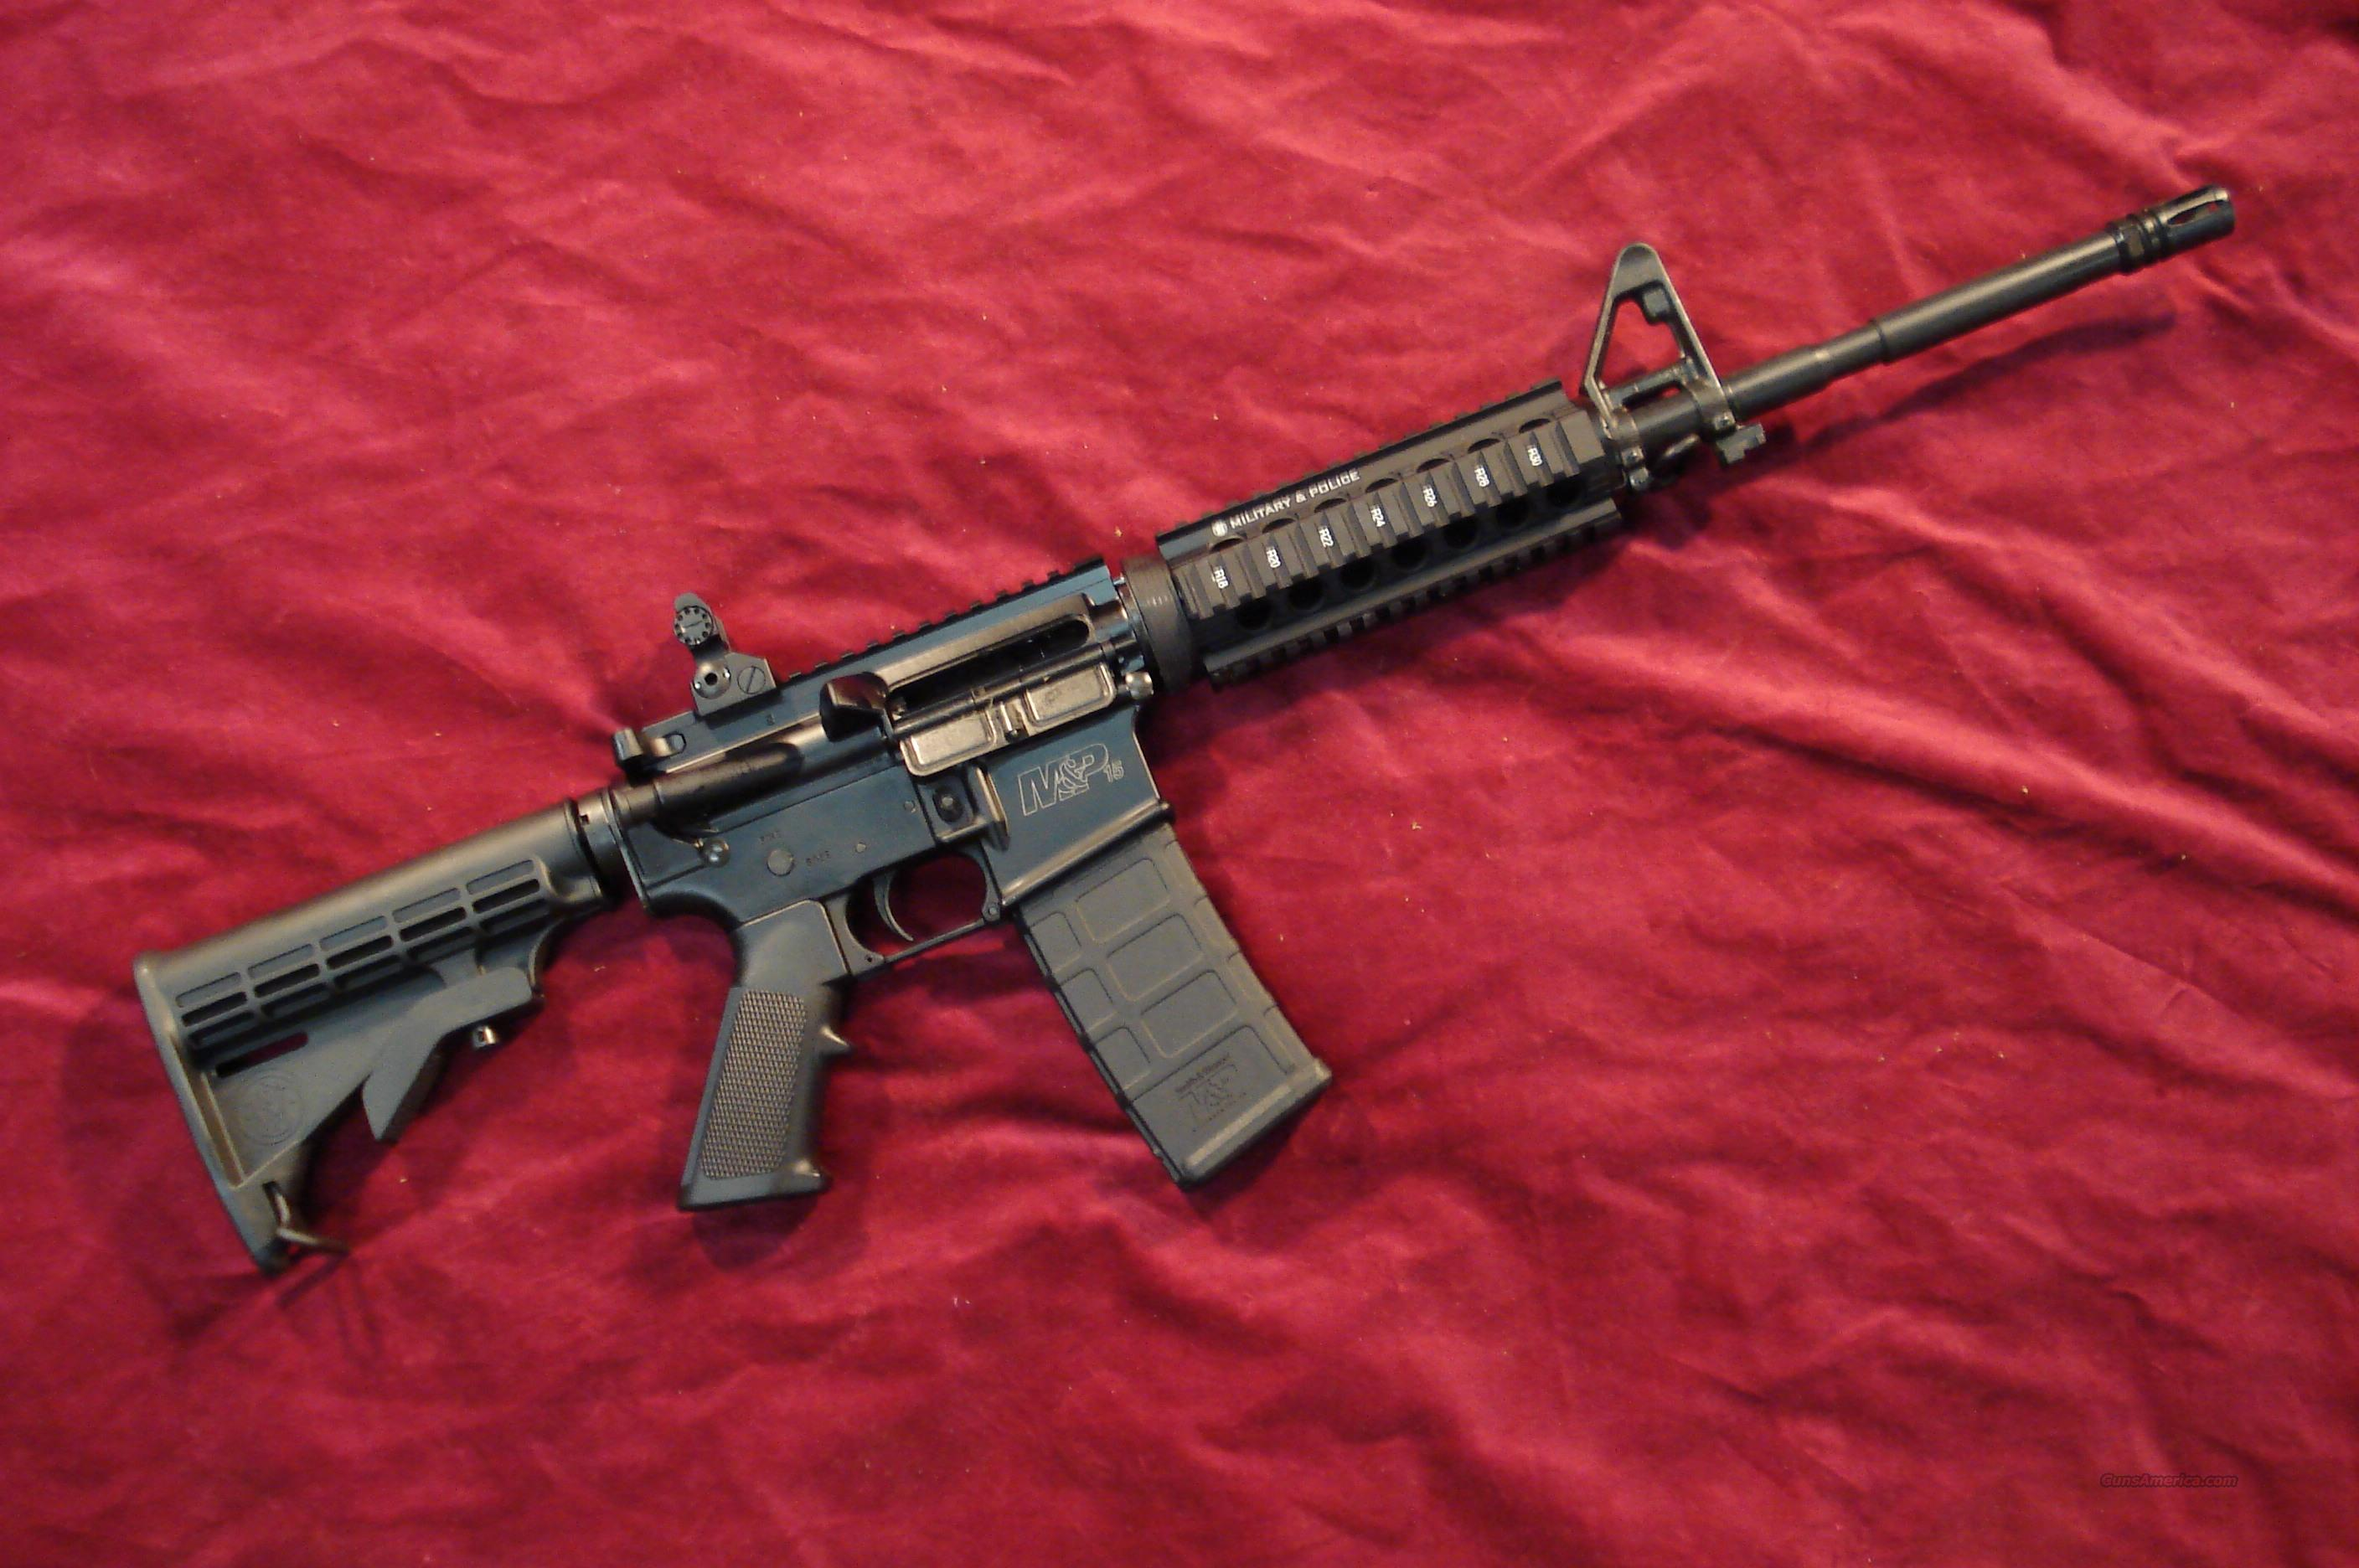 SMITH AND WESSON M&P 15X FLAT TOP 223CAL. W/4 RAIL TACTICAL HAND GUARD NEW    Guns > Rifles > Smith & Wesson Rifles > M&P